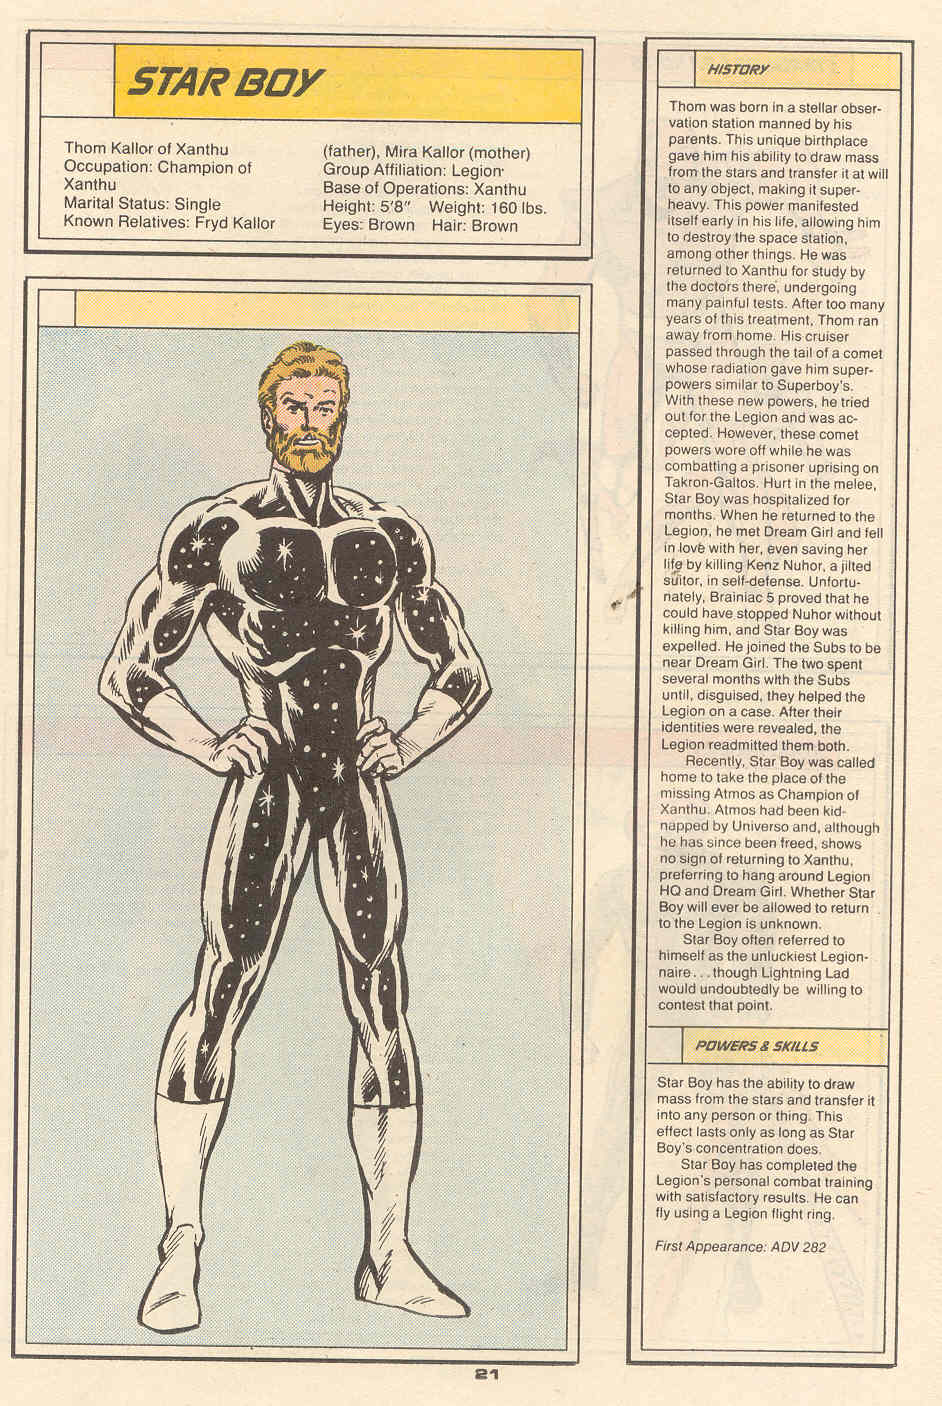 Star Boy by Kerry Gammill and Kez Wilson - Who's Who in the Legion of Super-Heroes #6